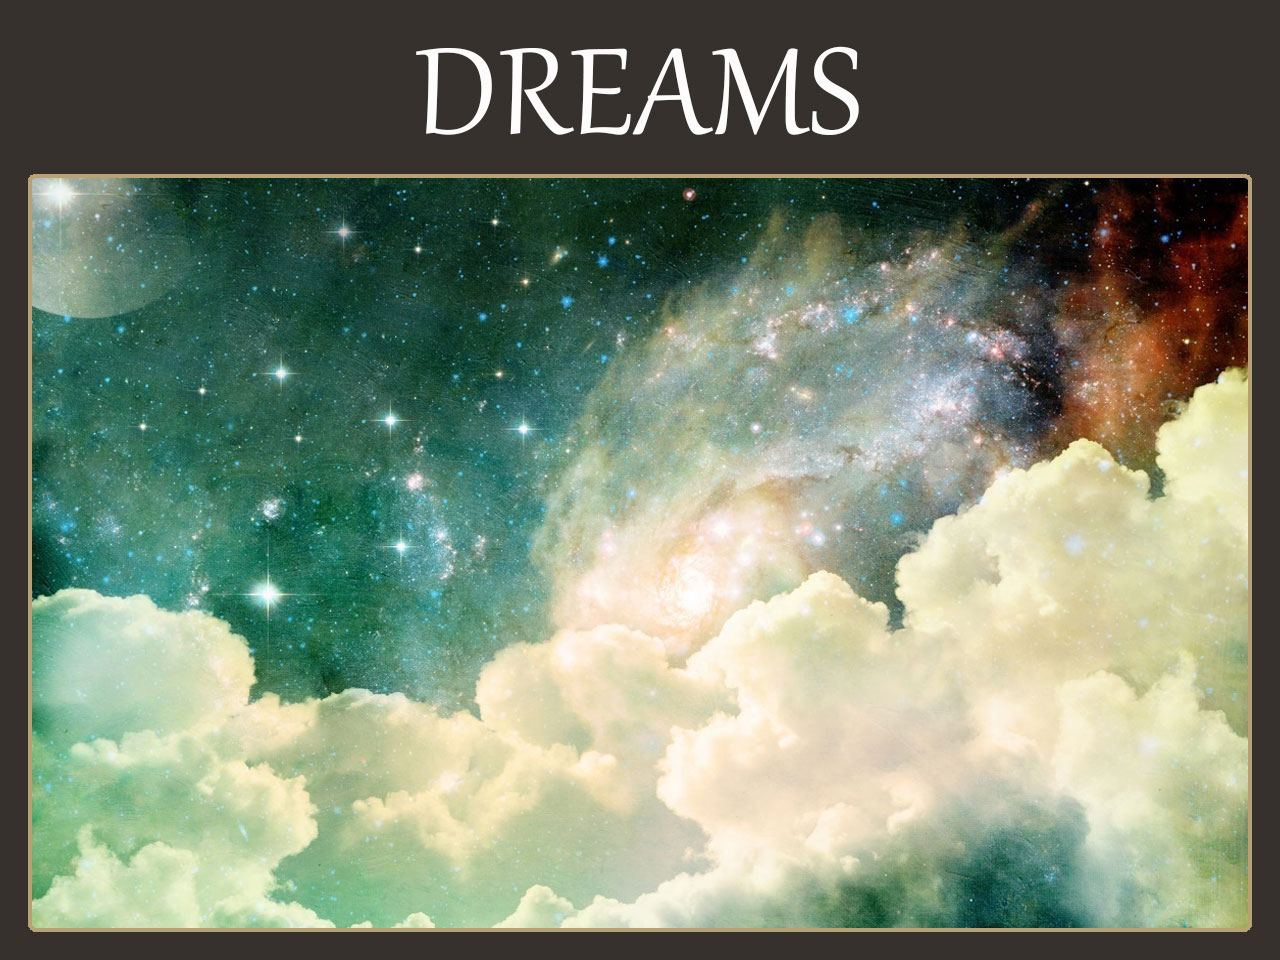 an analysis of the idea of prophetic and lucid dreams In a prophetic dream, you see the future through your dream it is difficult to  determine that a dream is prophetic because we can only confirm such a dream  after.